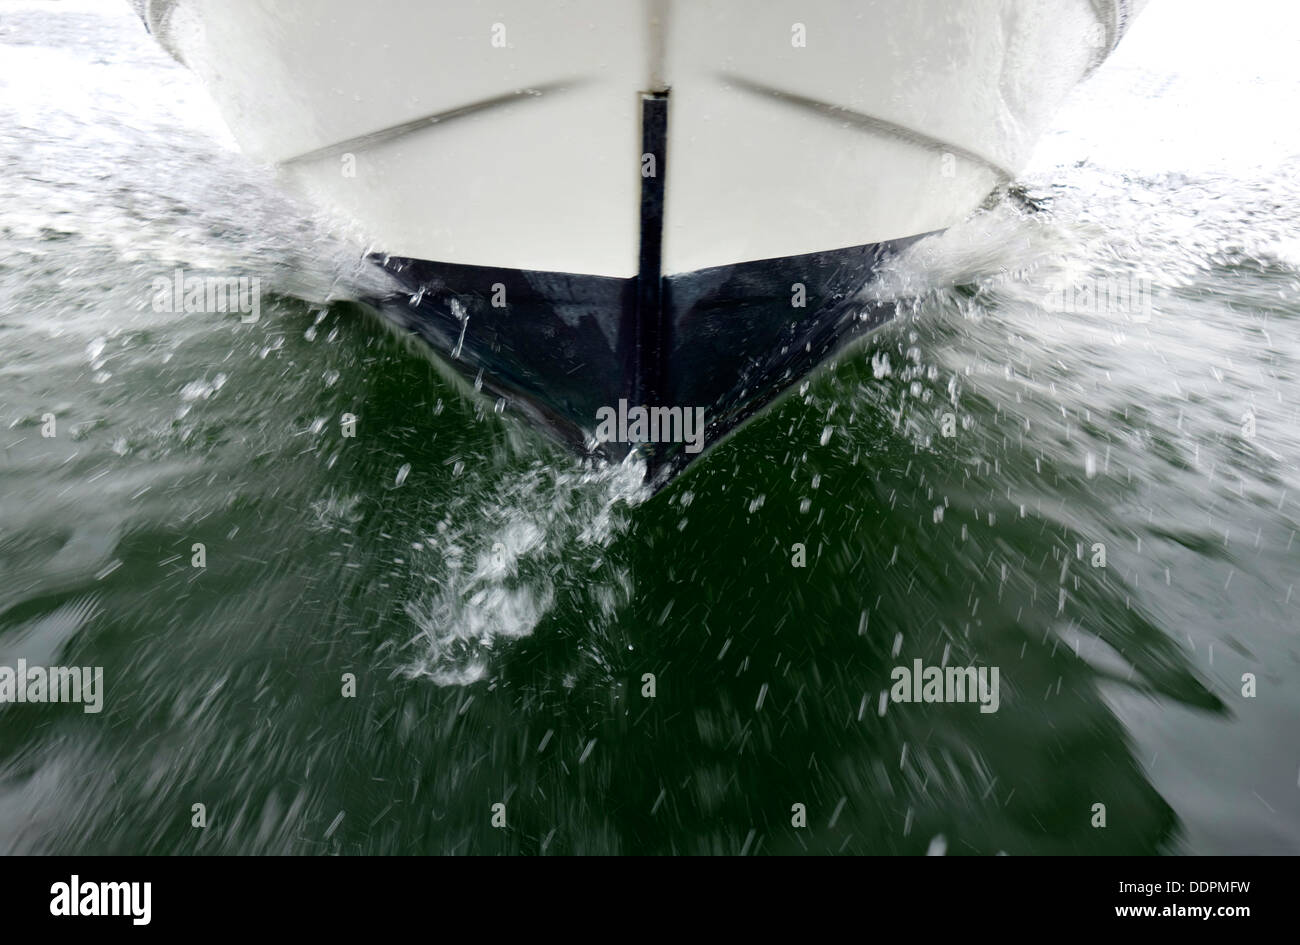 Collision Unavoidable. The prow of a boat in speed cuts through the water in viewer direction. - Stock Image